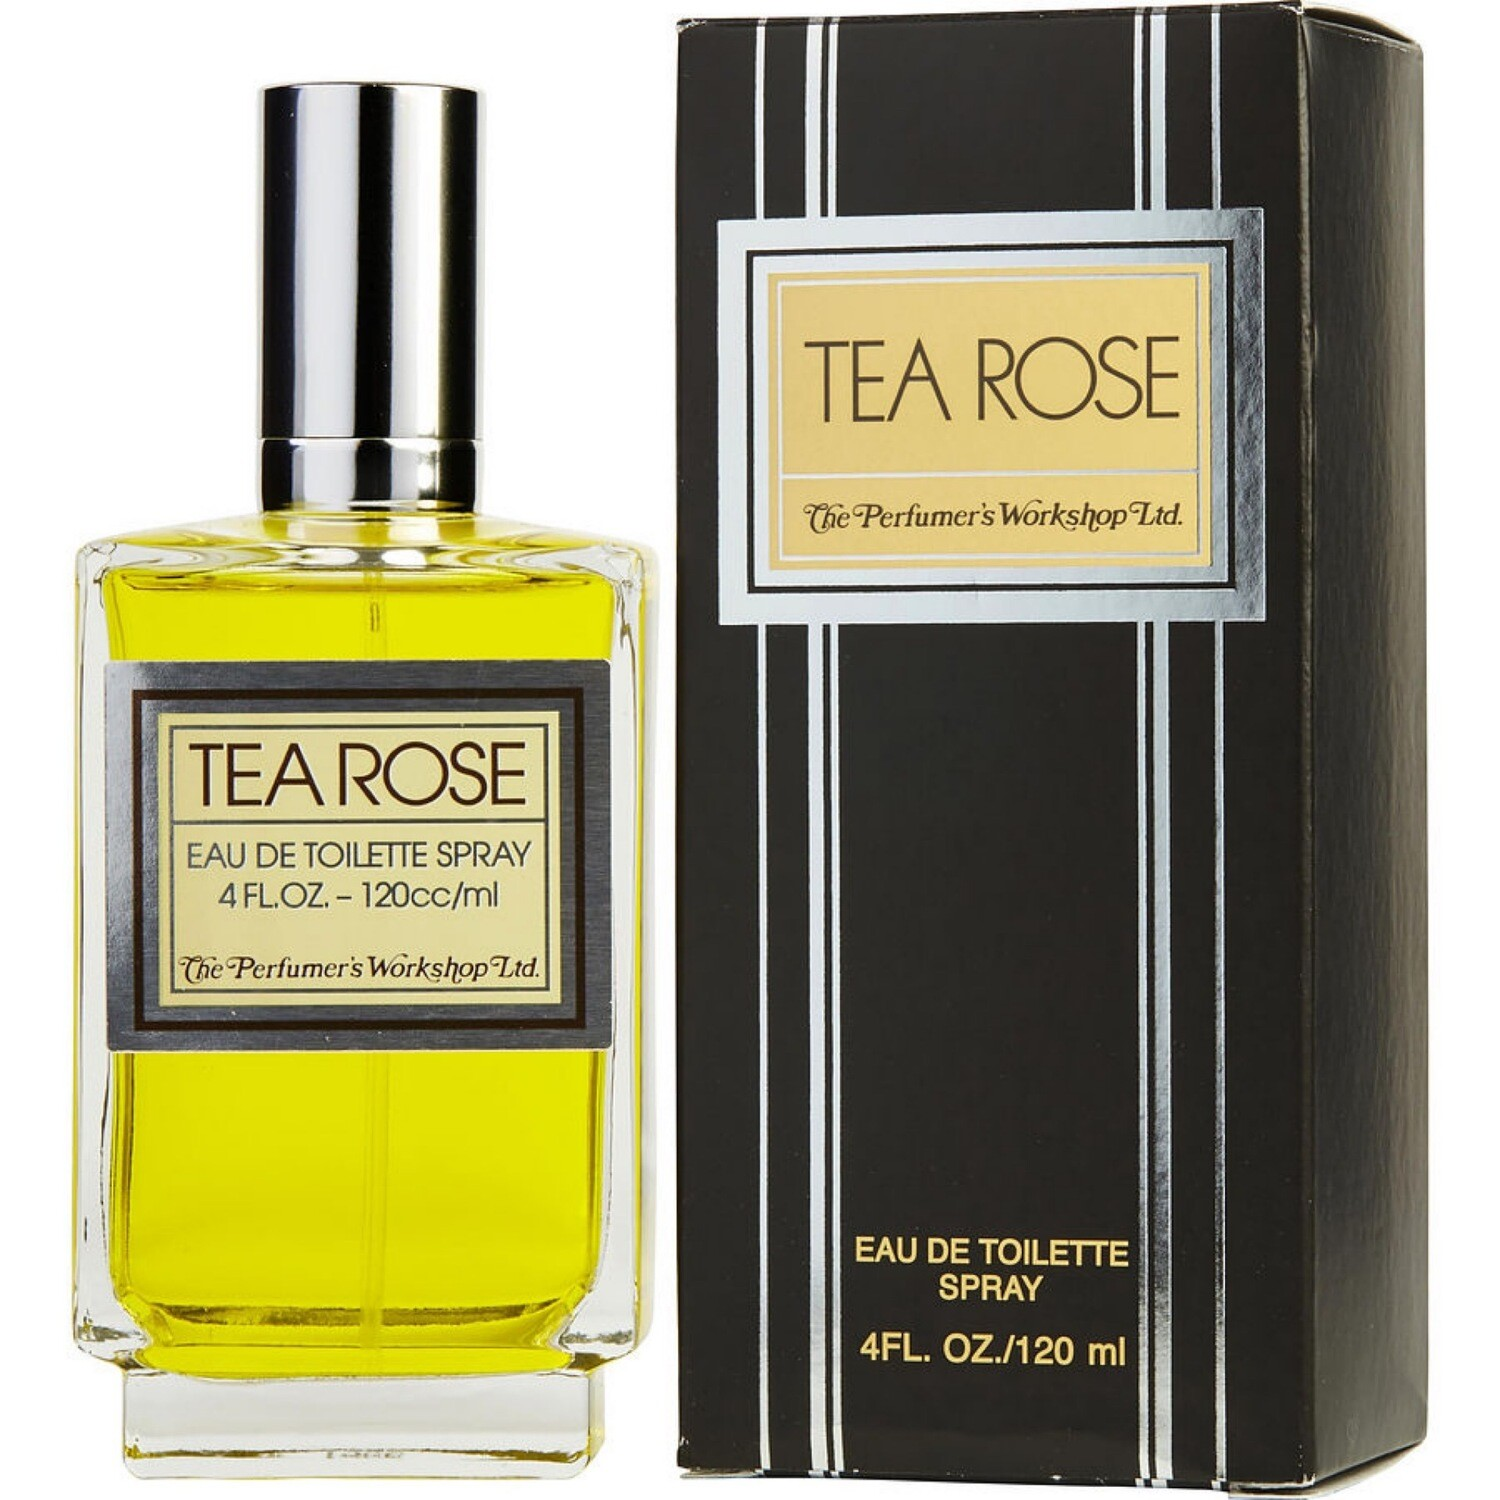 Tea Rose Eu De Toilette